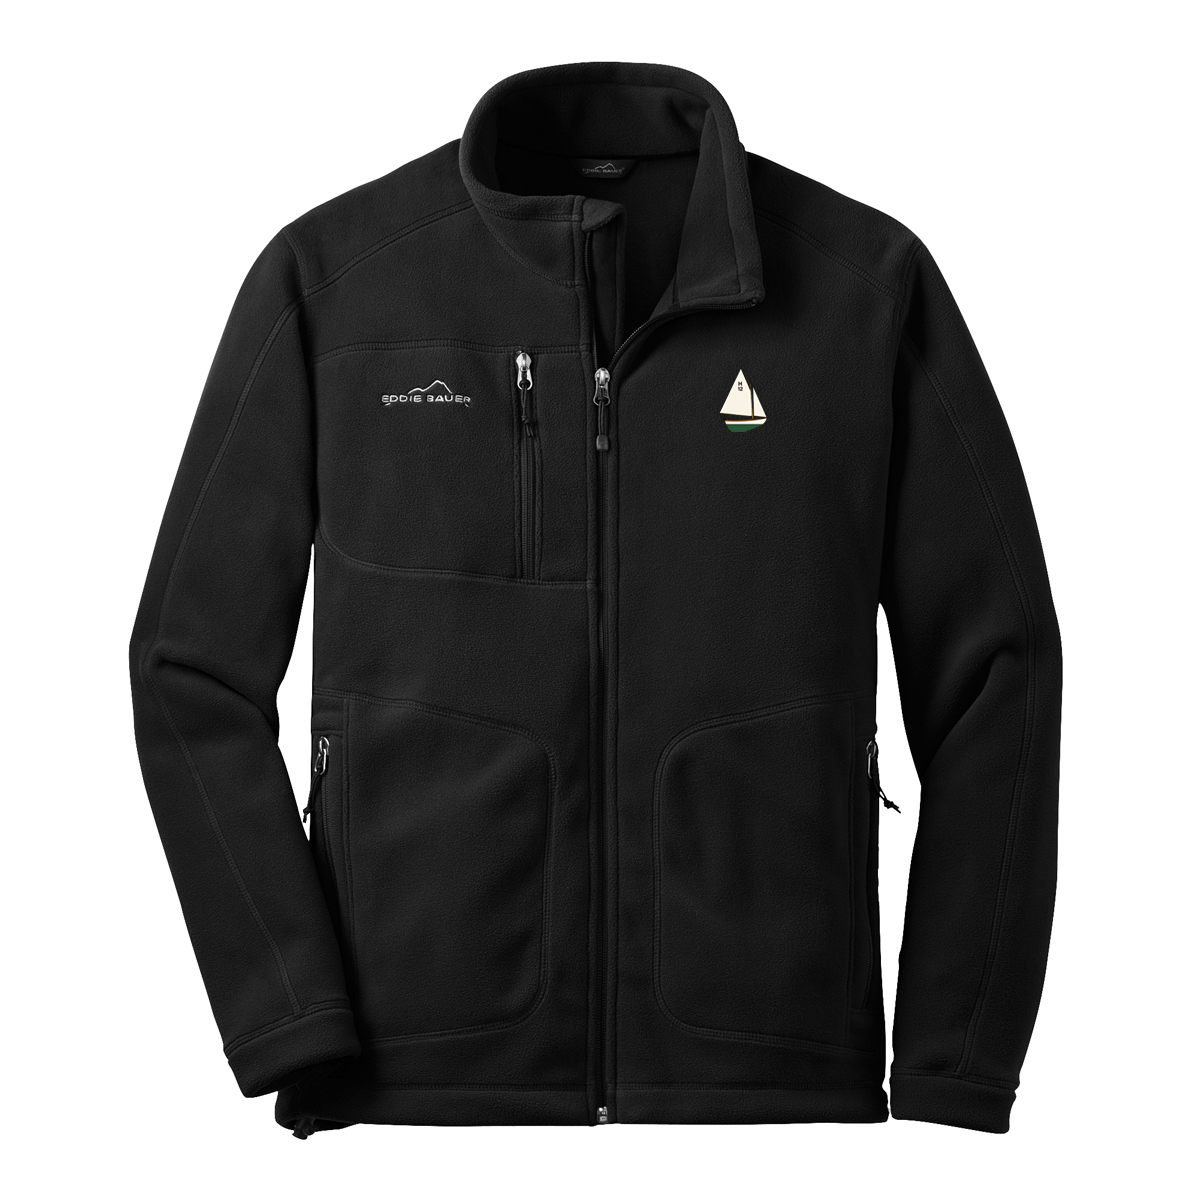 H-Class - Men's Eddie Bauer Fleece Jacket